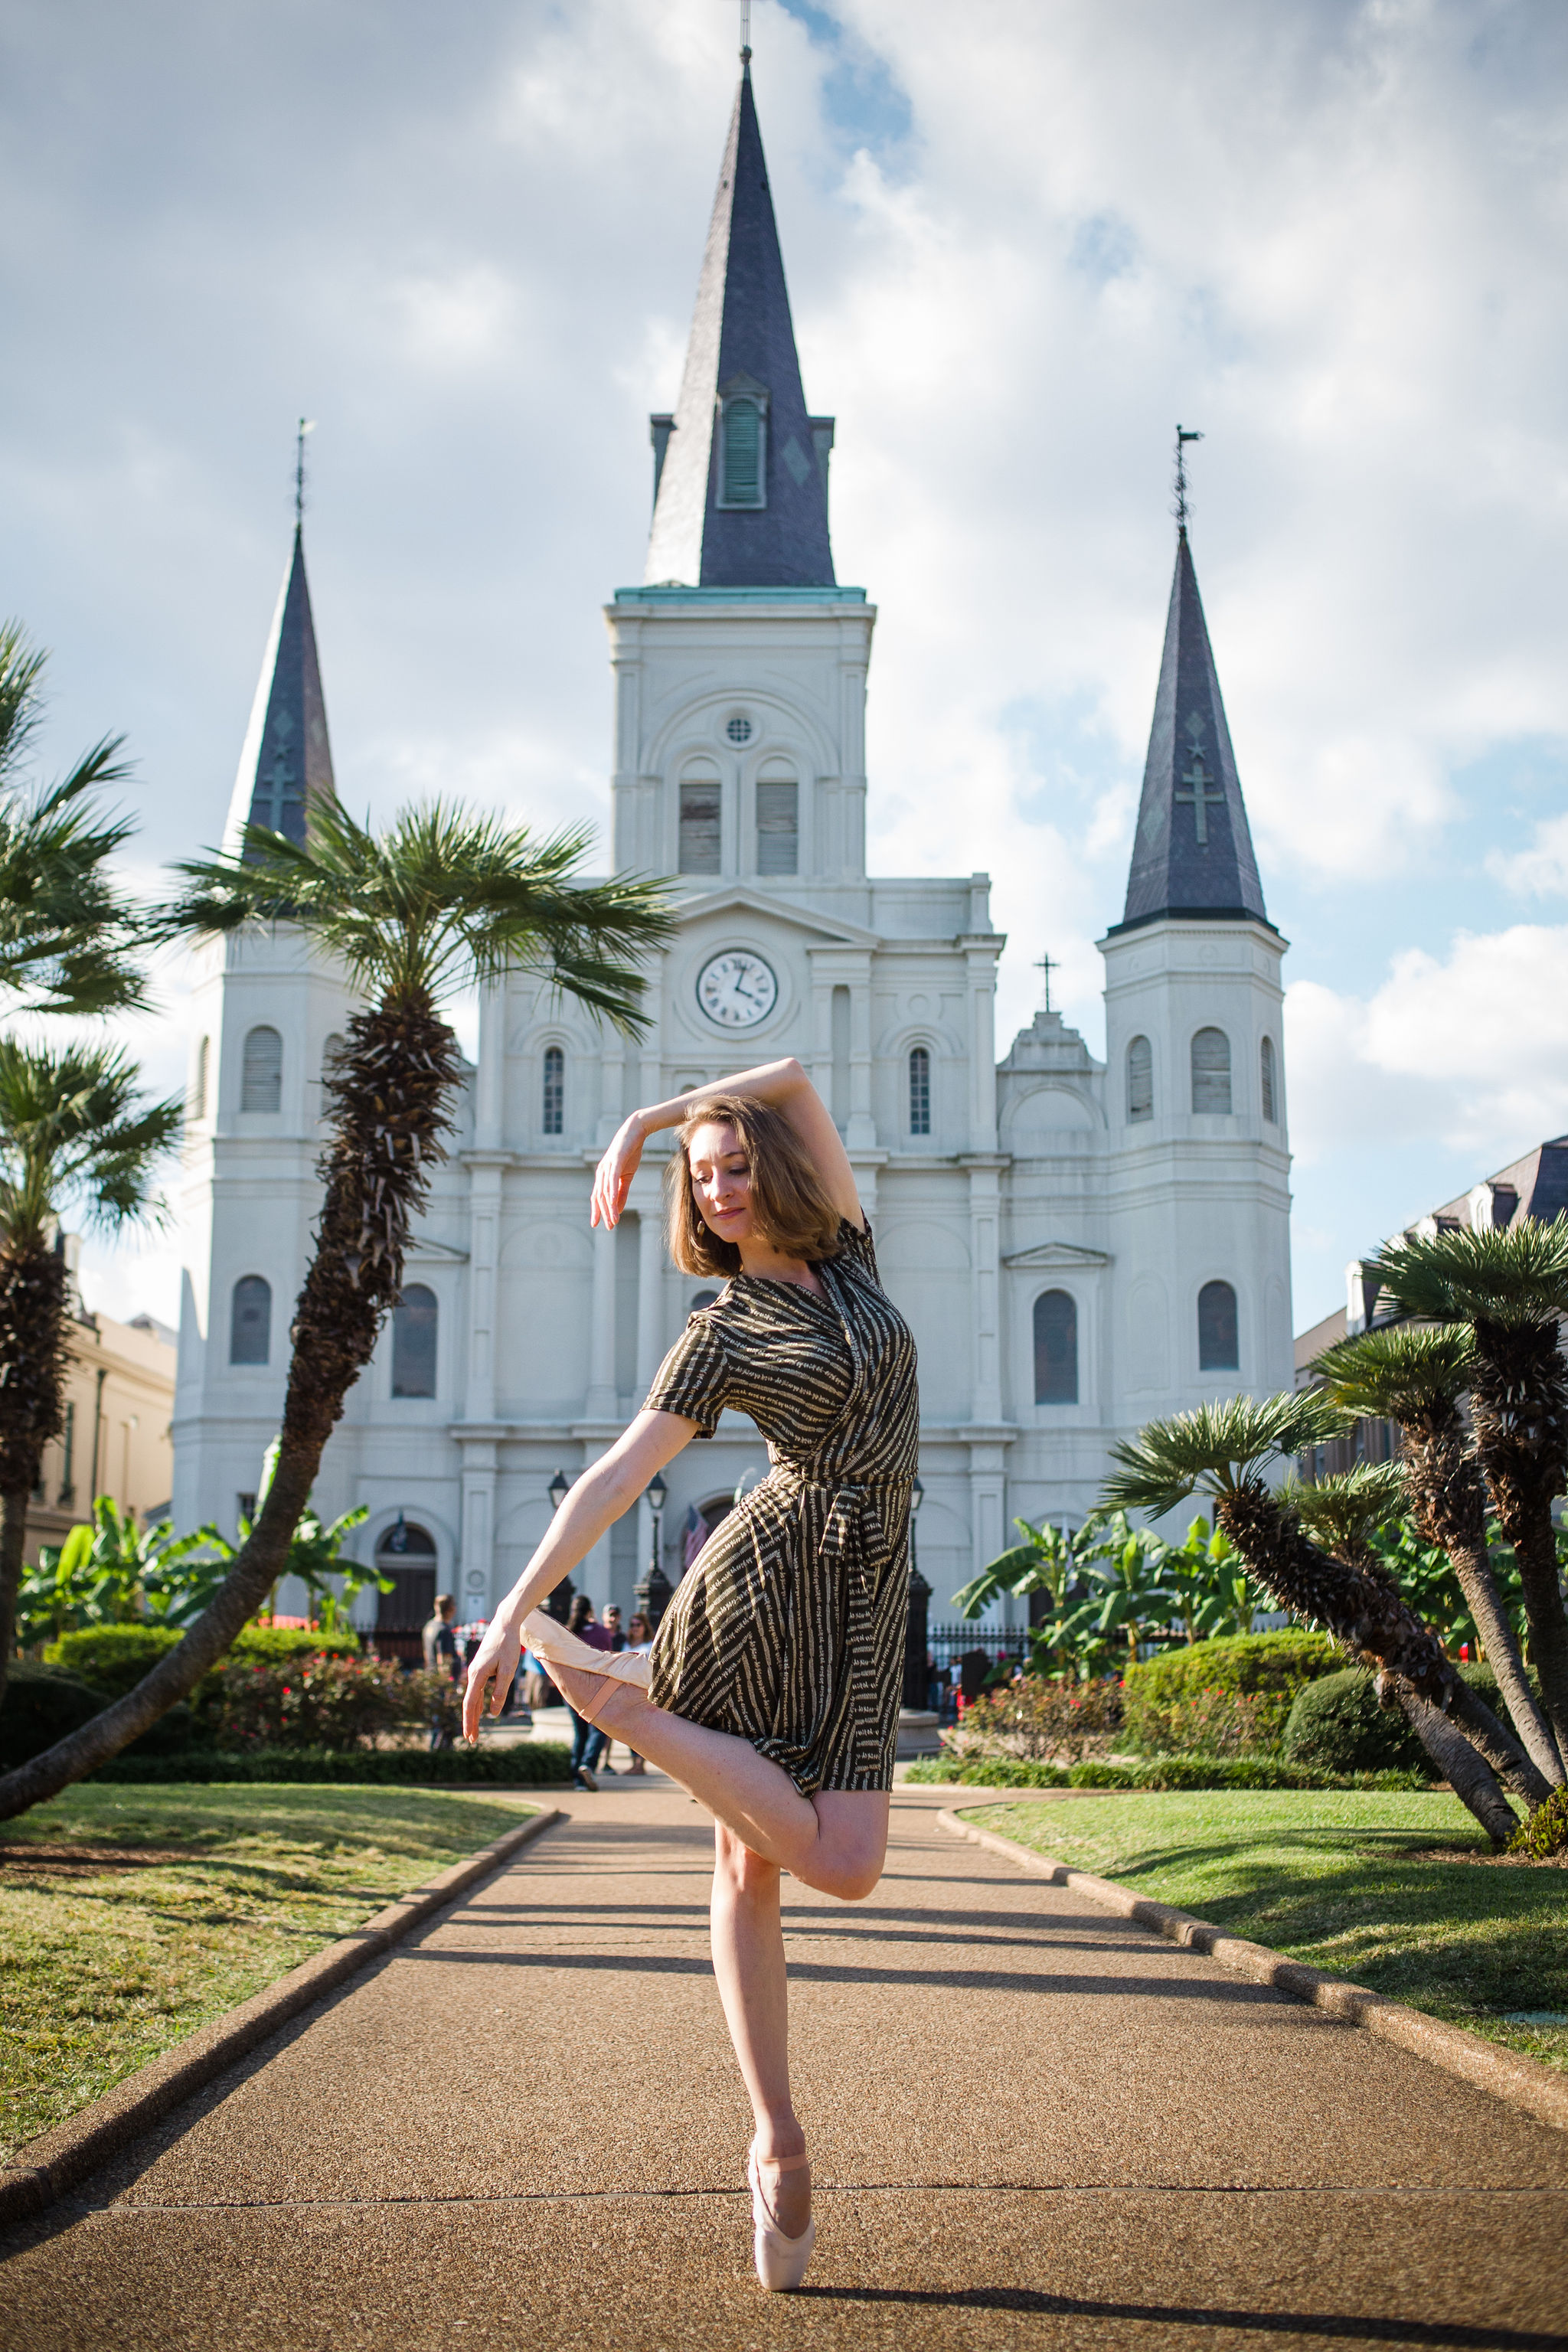 2018_10_29_new_orleans_dance_lisa_whitney-5134.jpg